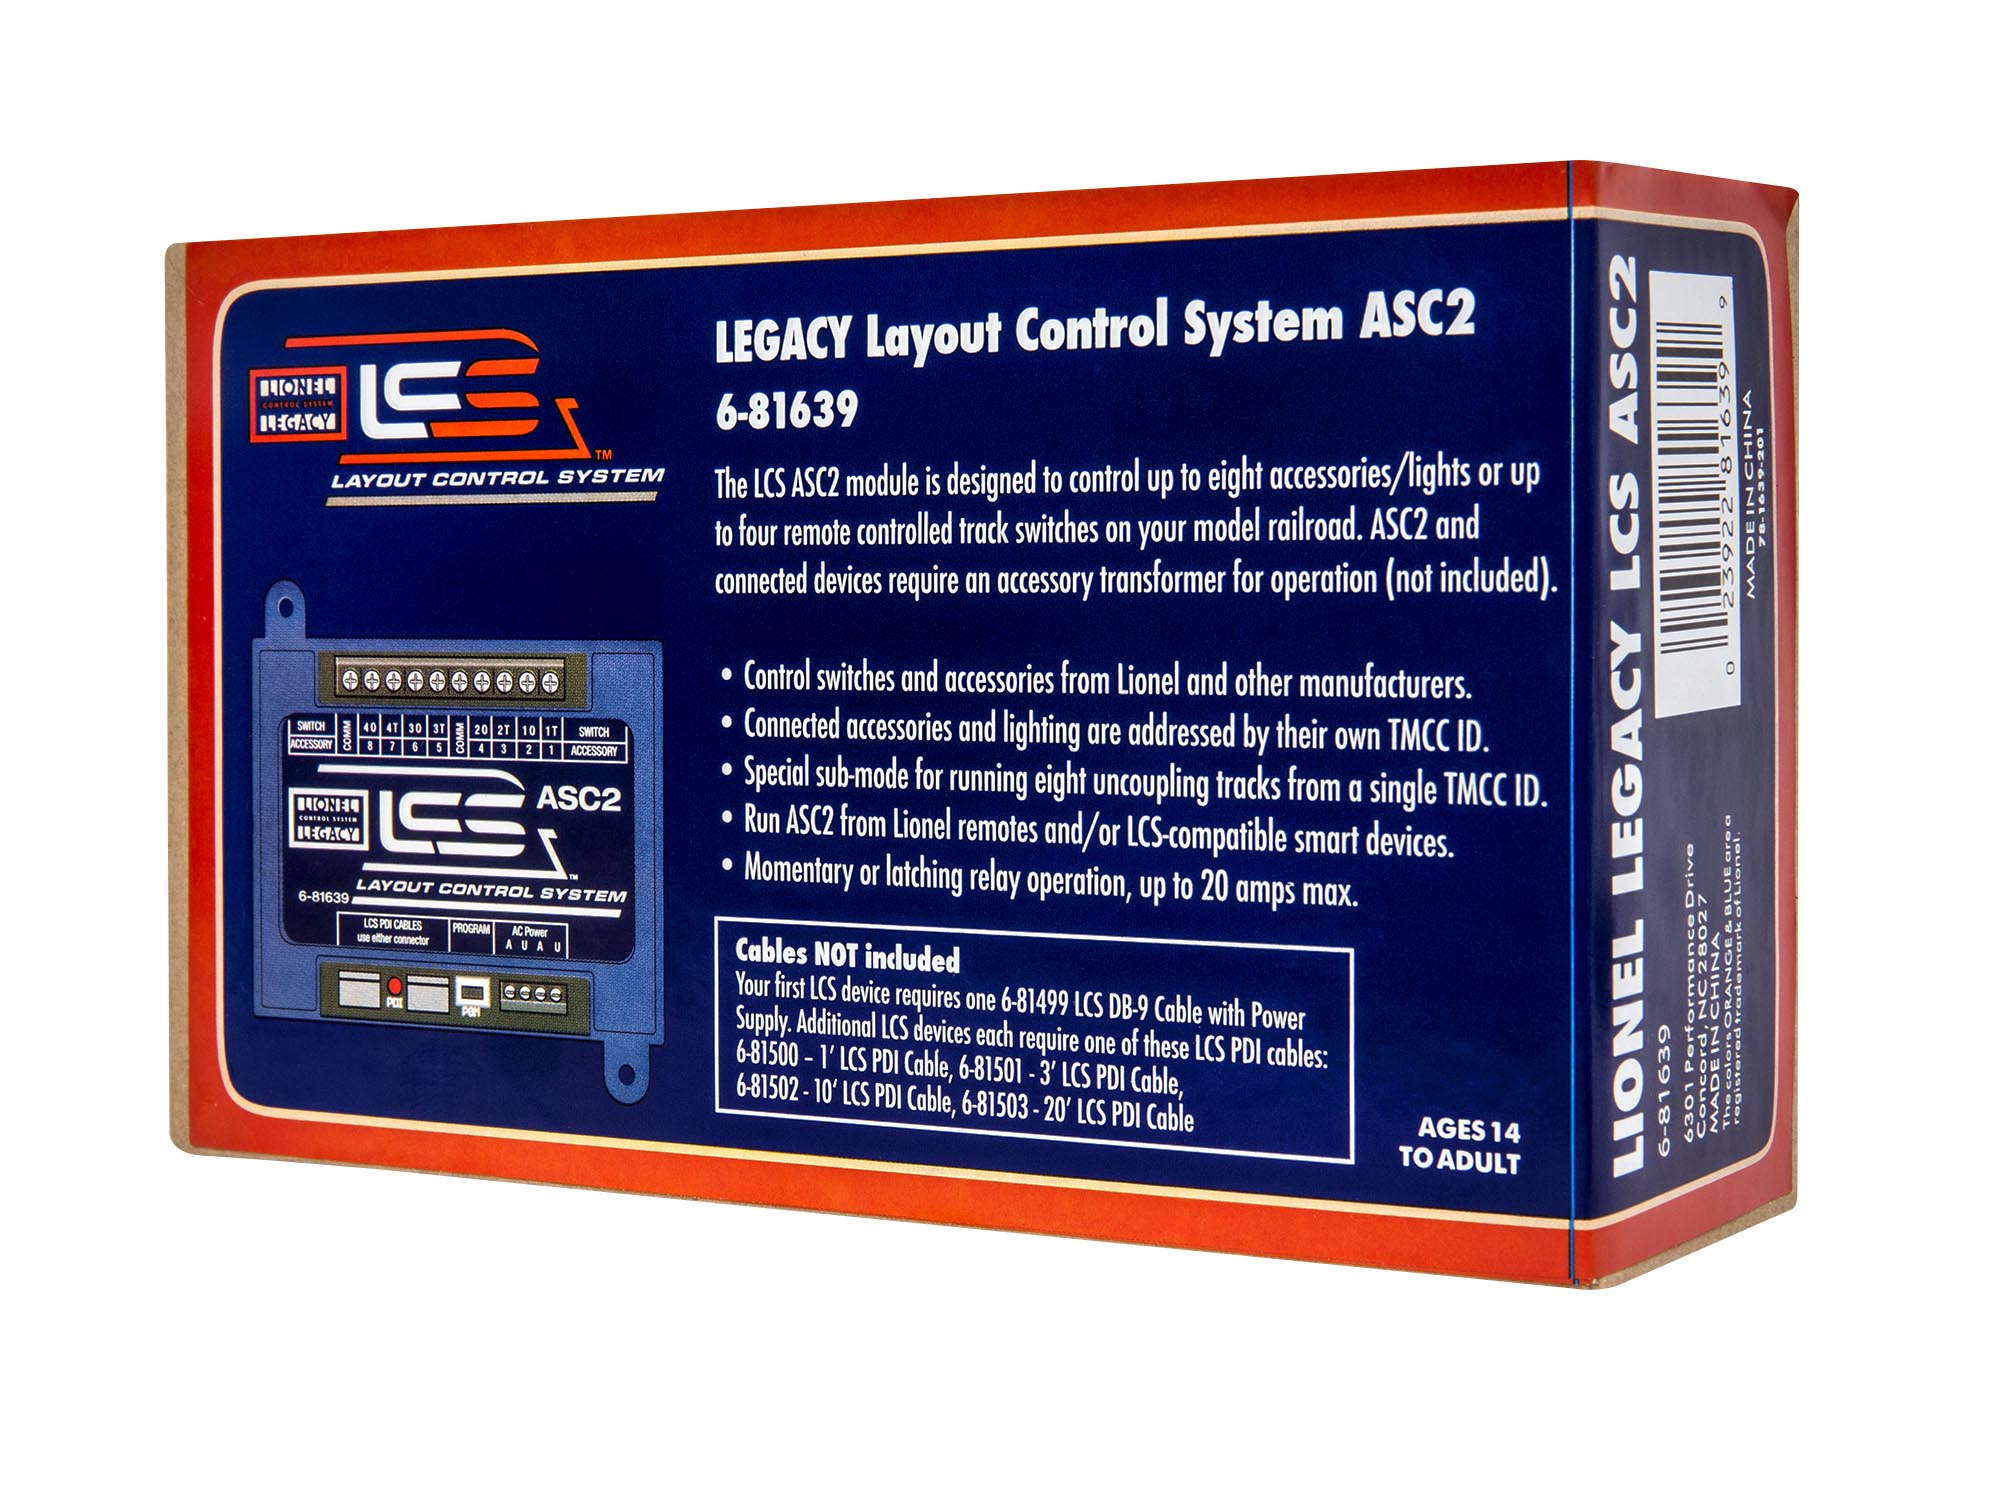 LCS Accessory Switch Controller 2 (ASC2)